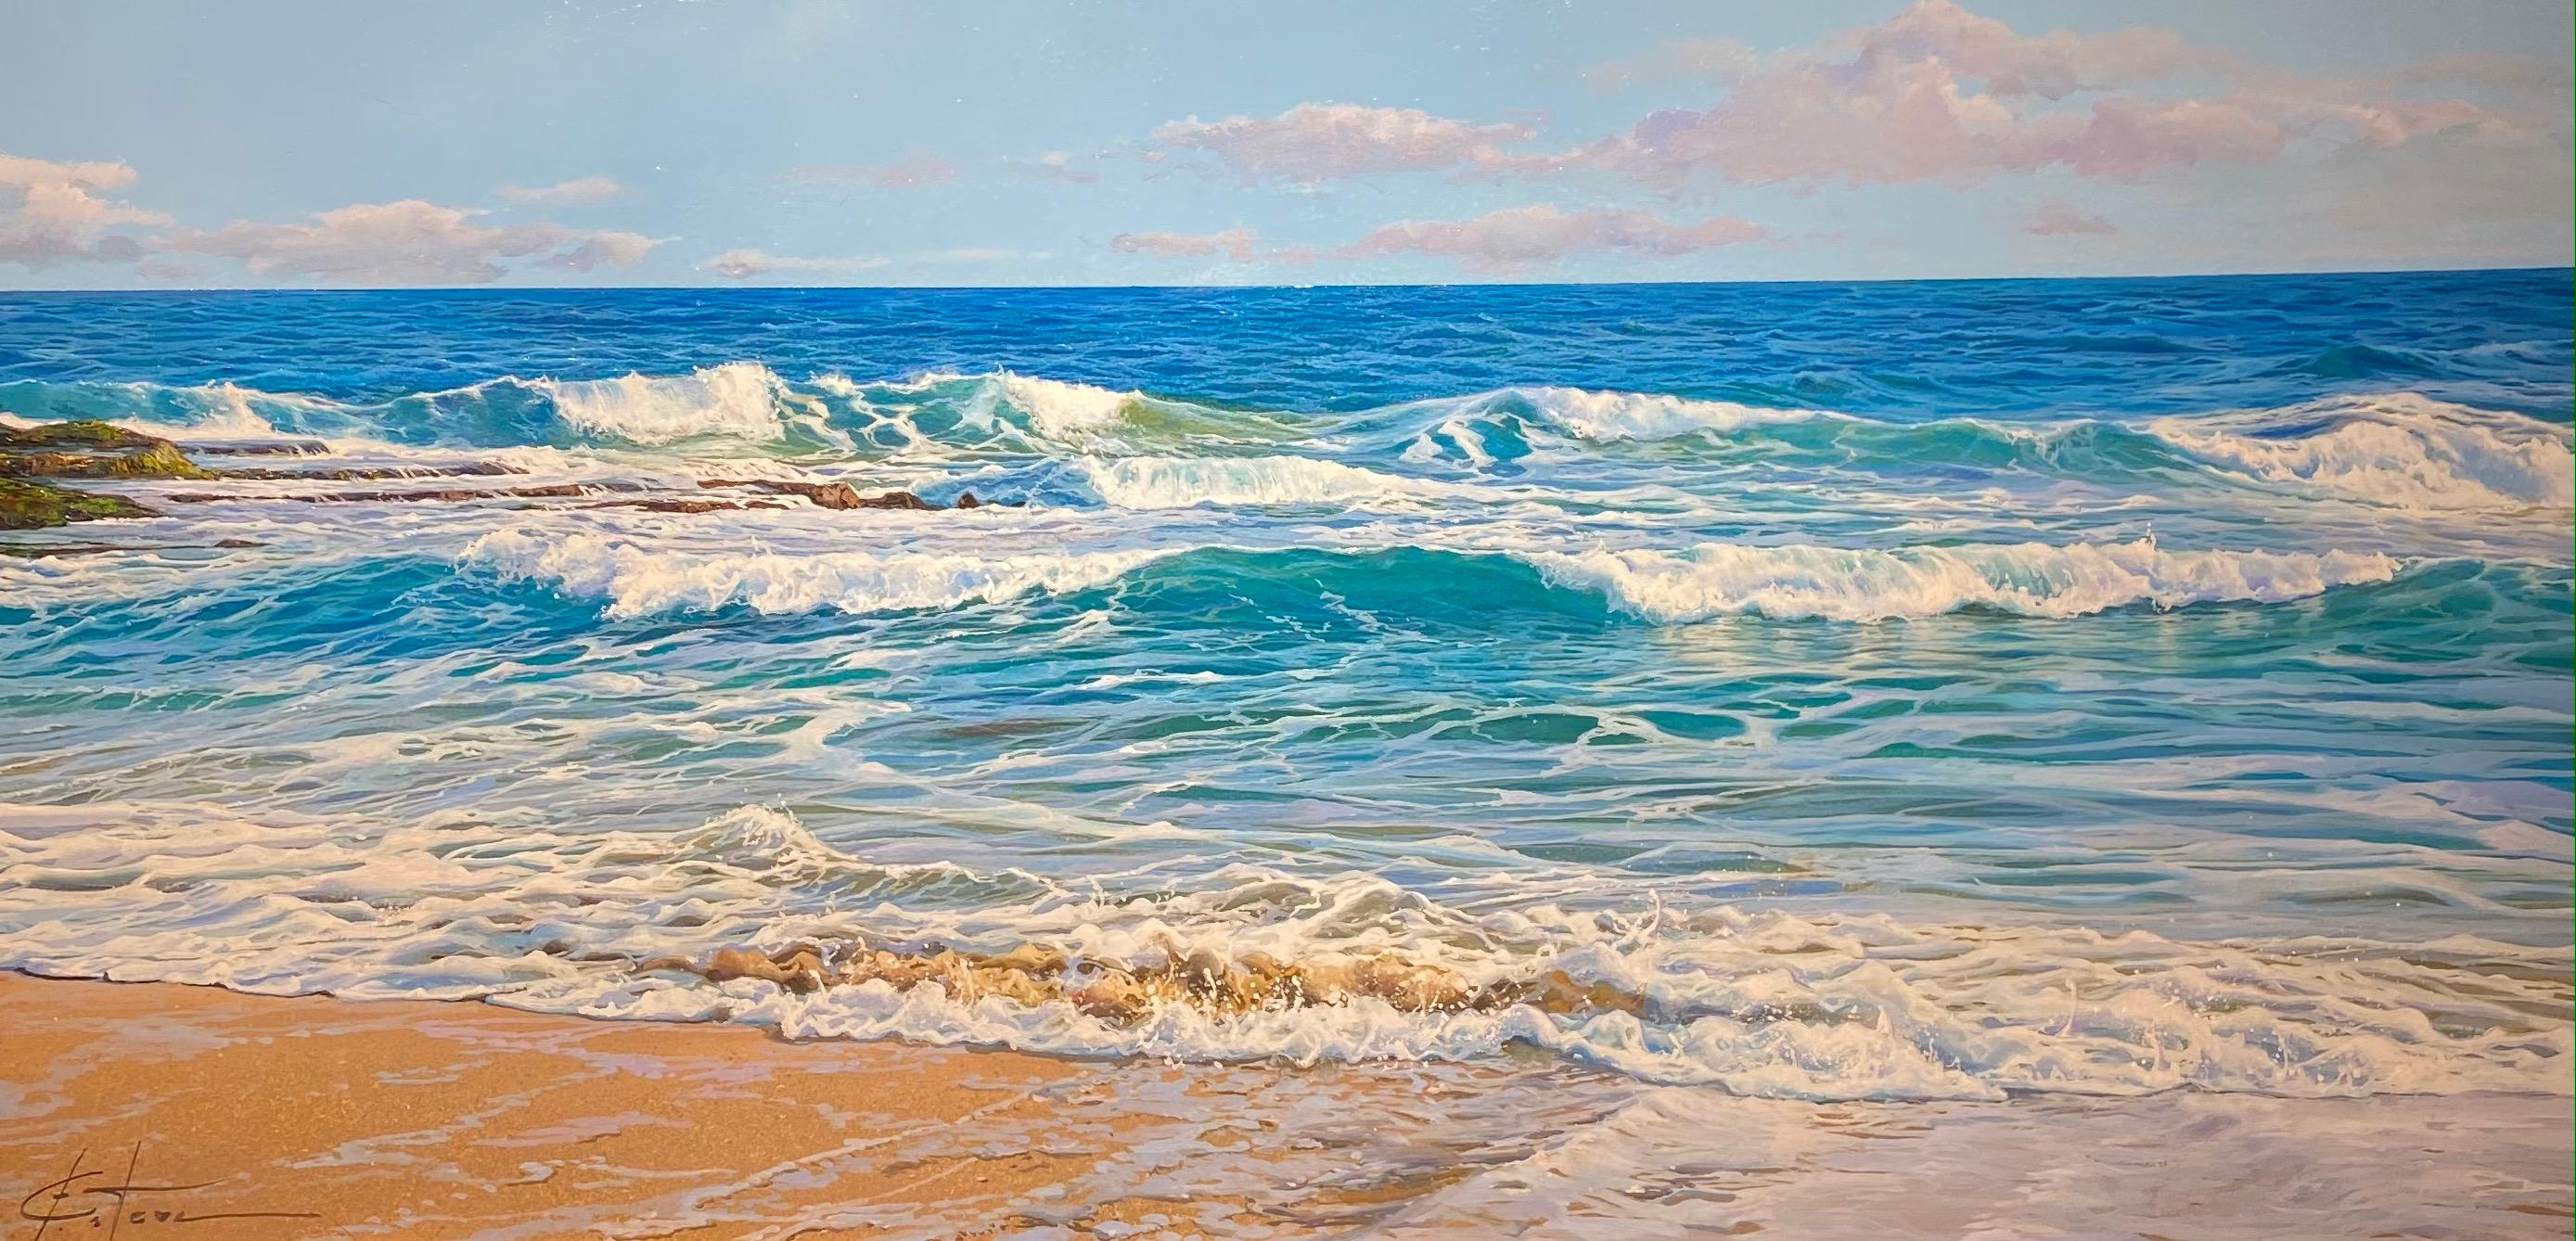 'Bubbling Reef' Contemporary Realist Seascape painting of waves, sand & sea